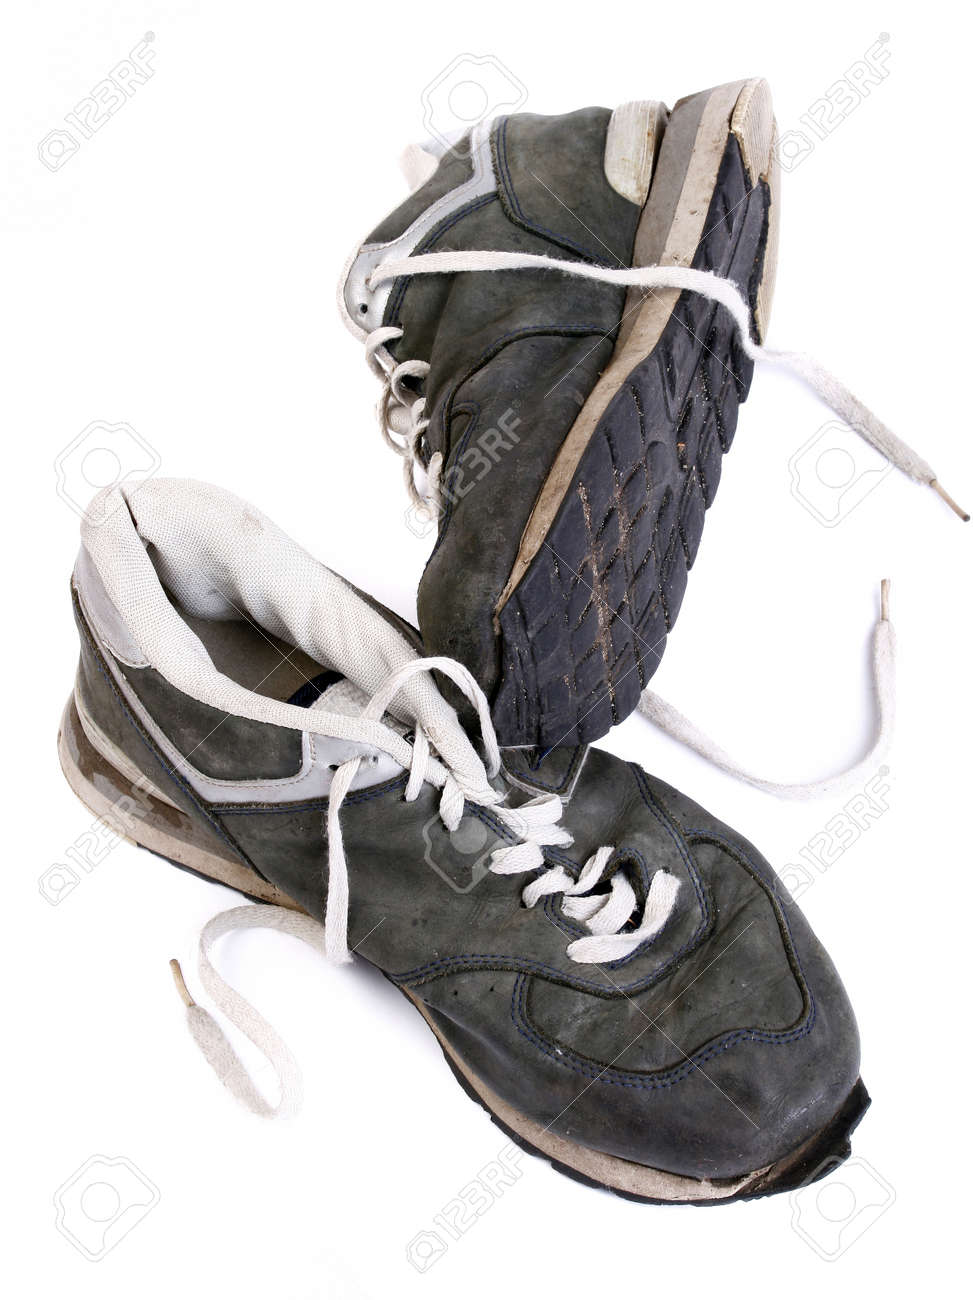 Old grungy Running Shoes isolated on white background Stock Photo - 8606363